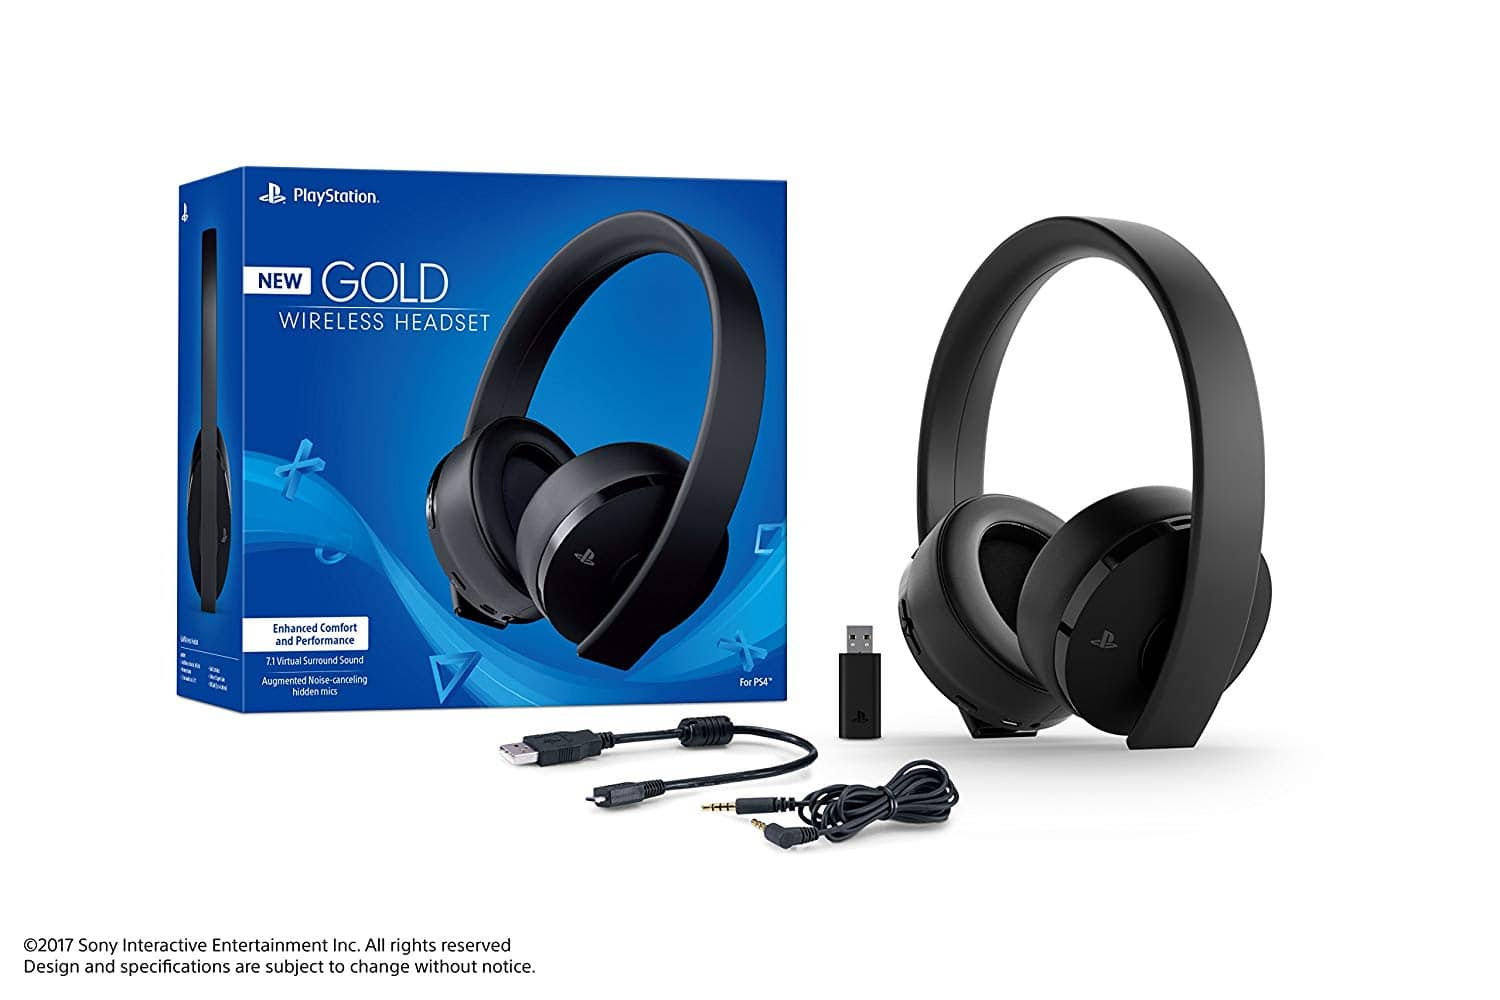 Sony PlayStation Gold Wireless Gaming Headset 7.1 Surround Sound PS4 - $59.45 + Free Shipping